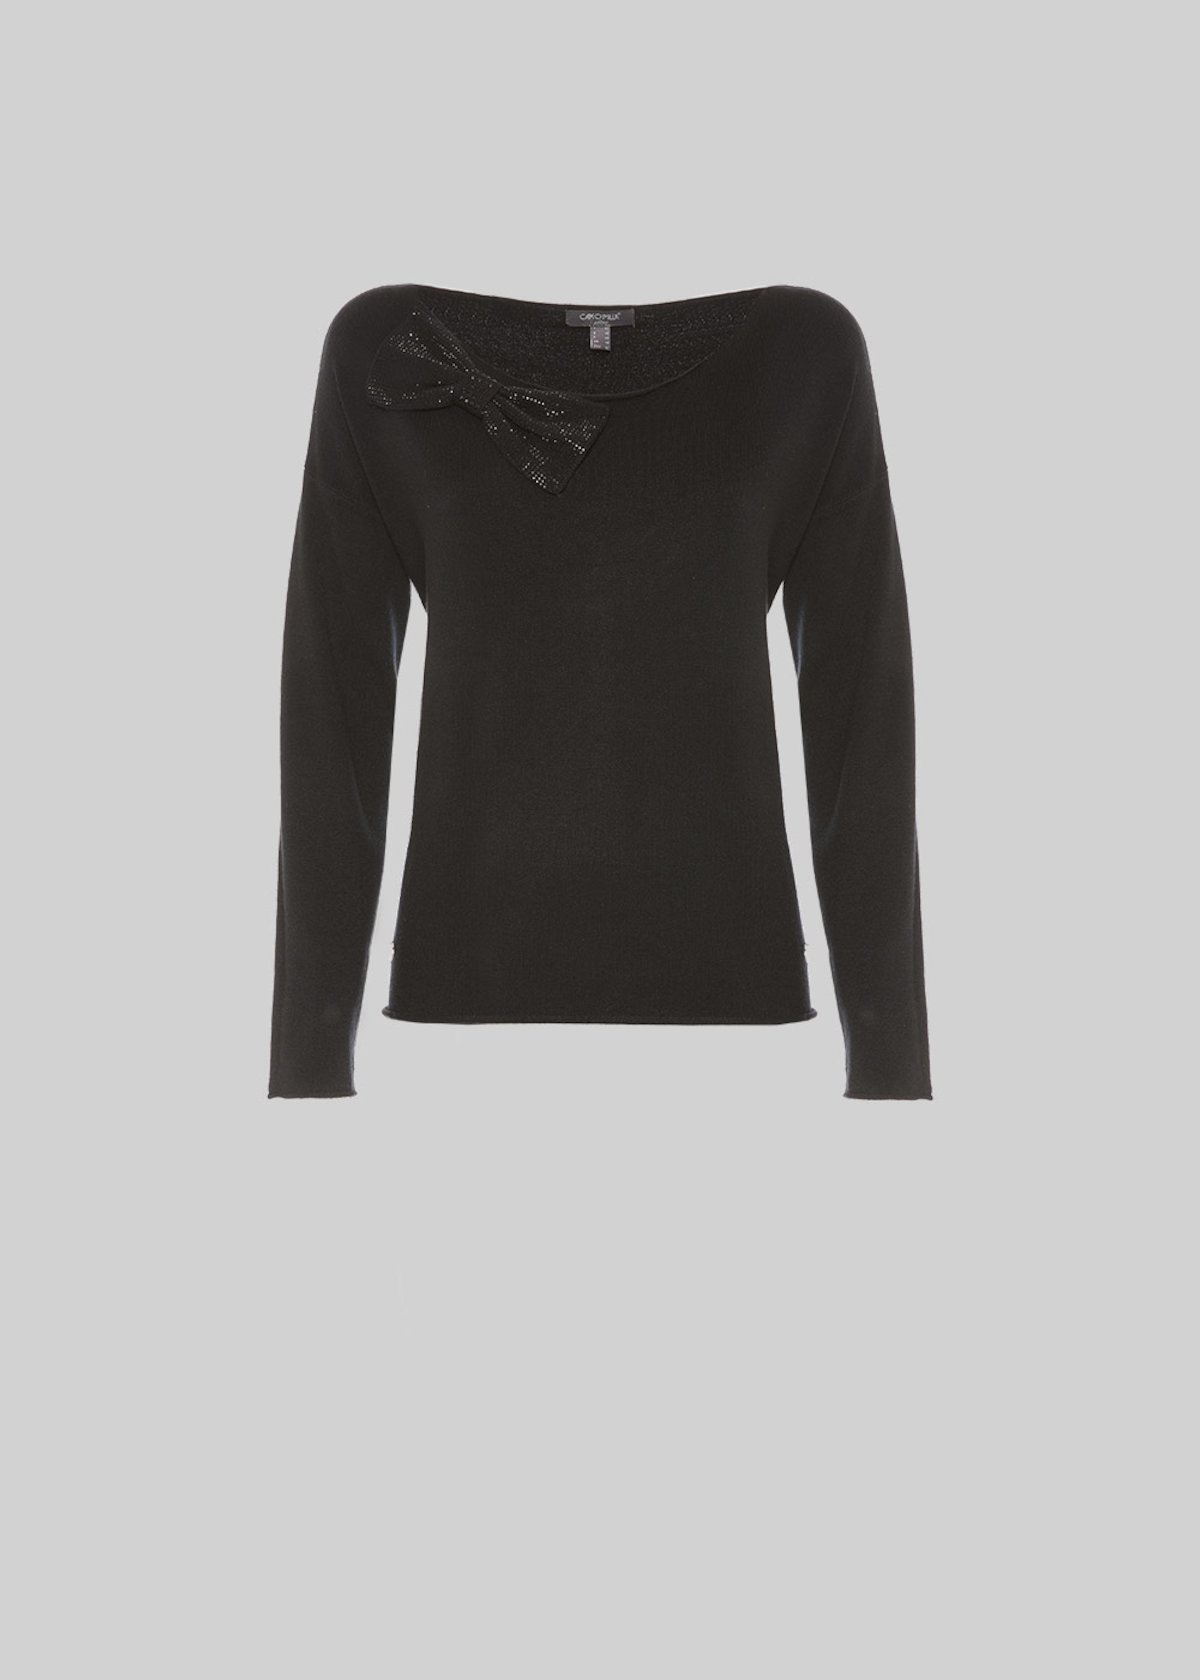 Maily sweater with bow and crystal details - Black - Woman - Category image